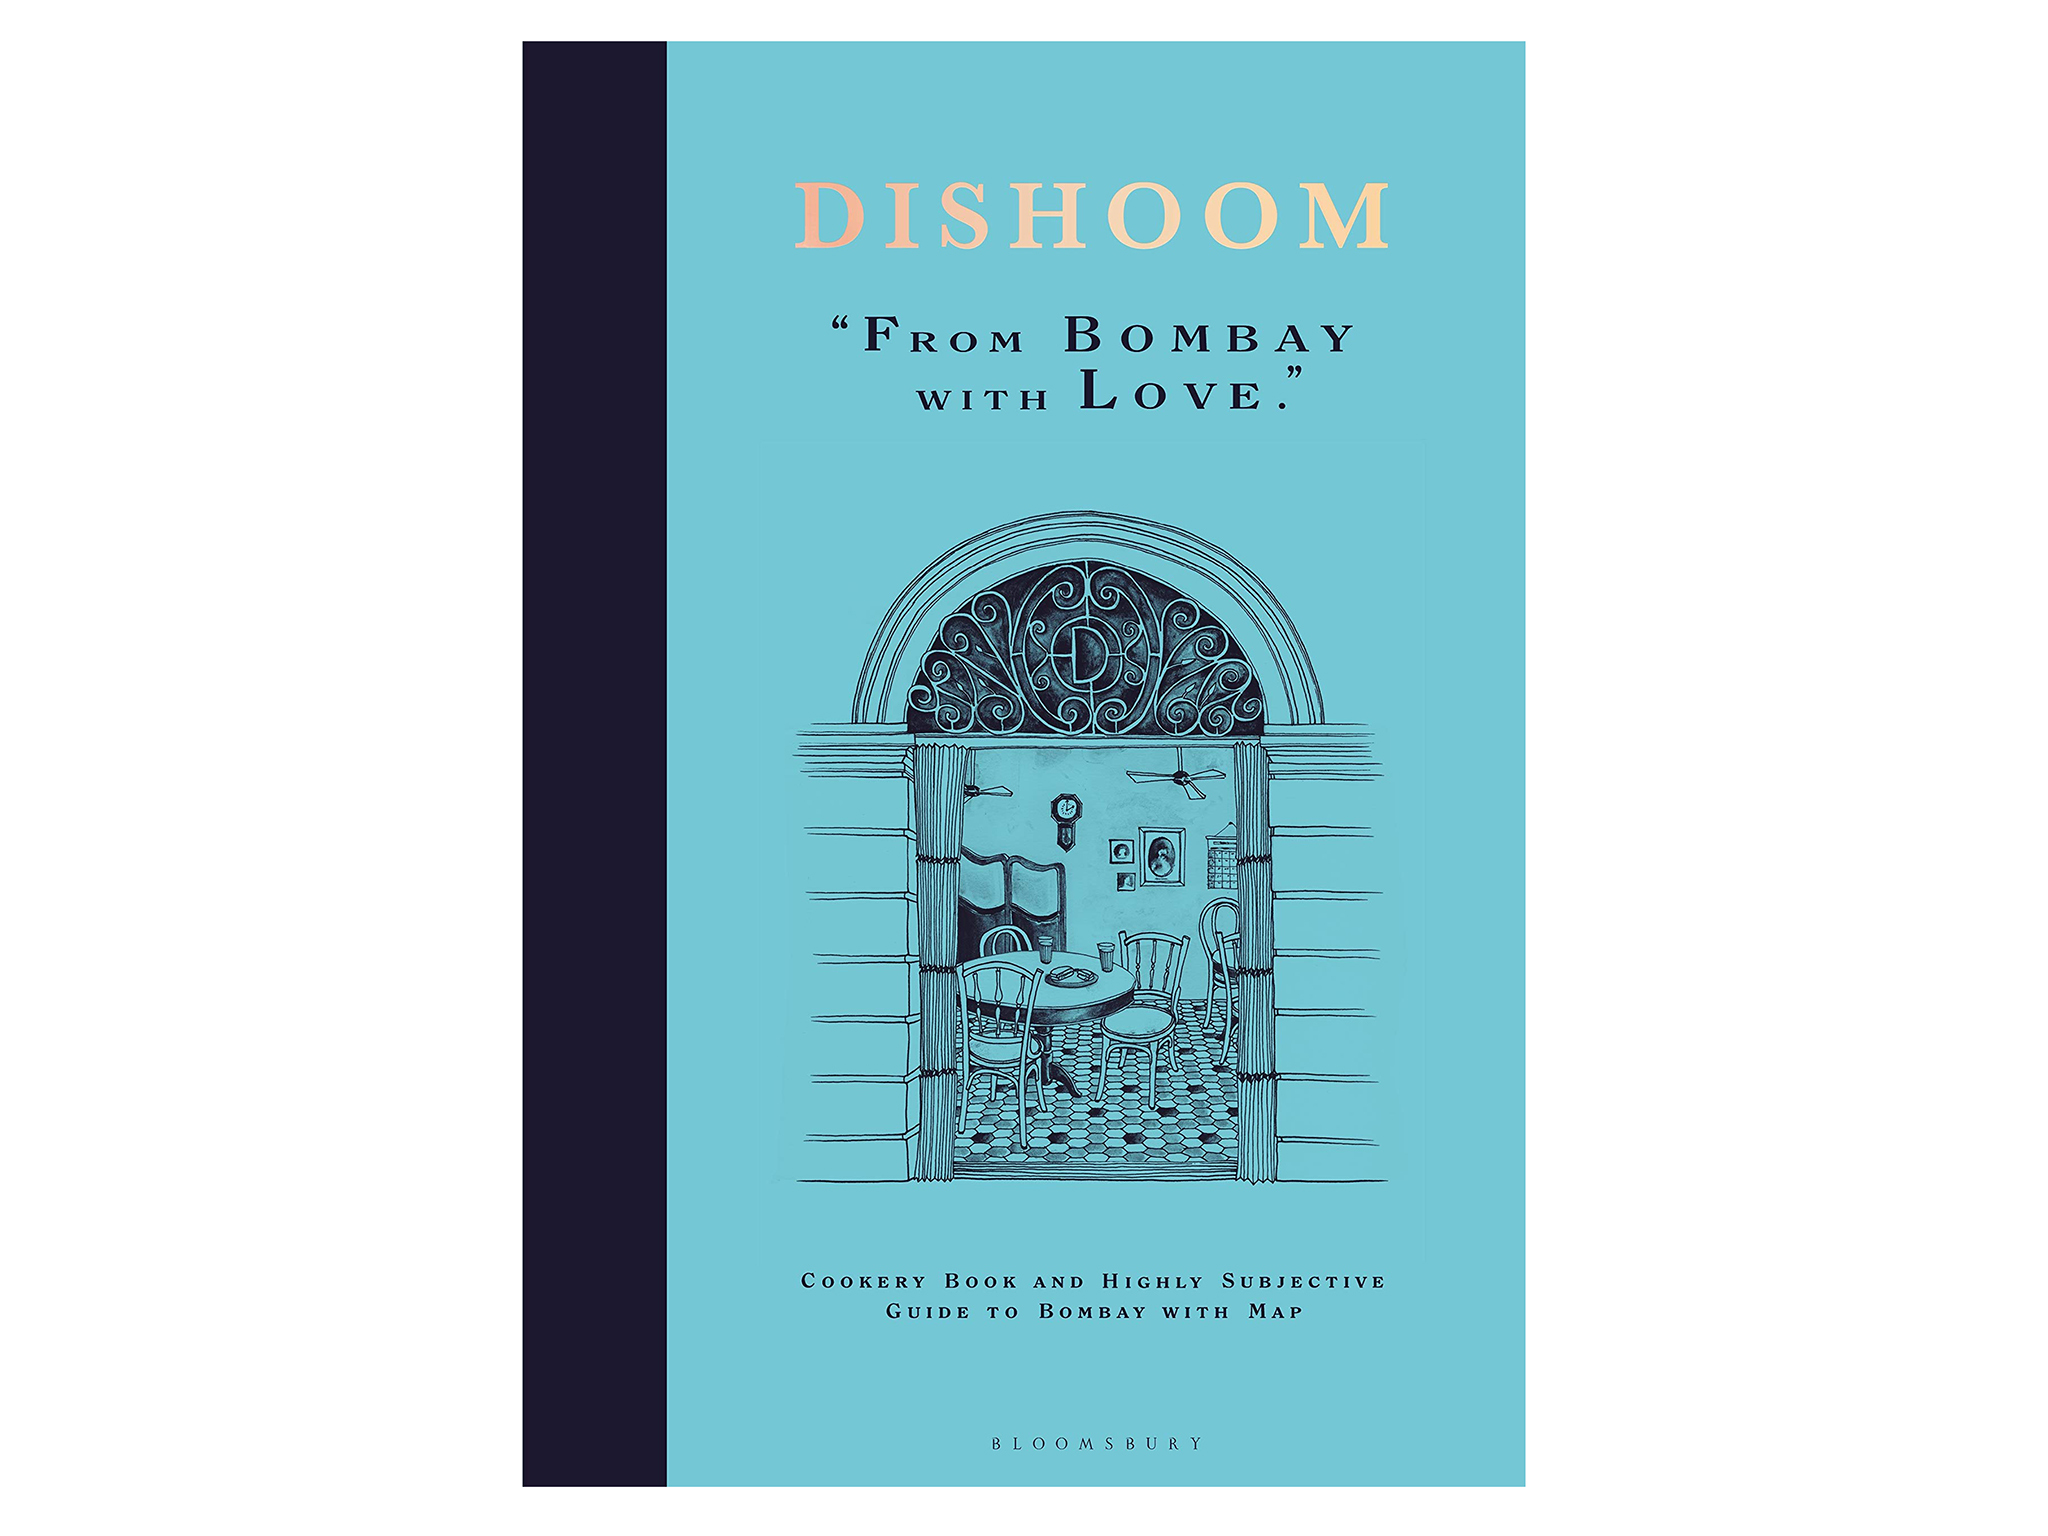 Dishoom cook book